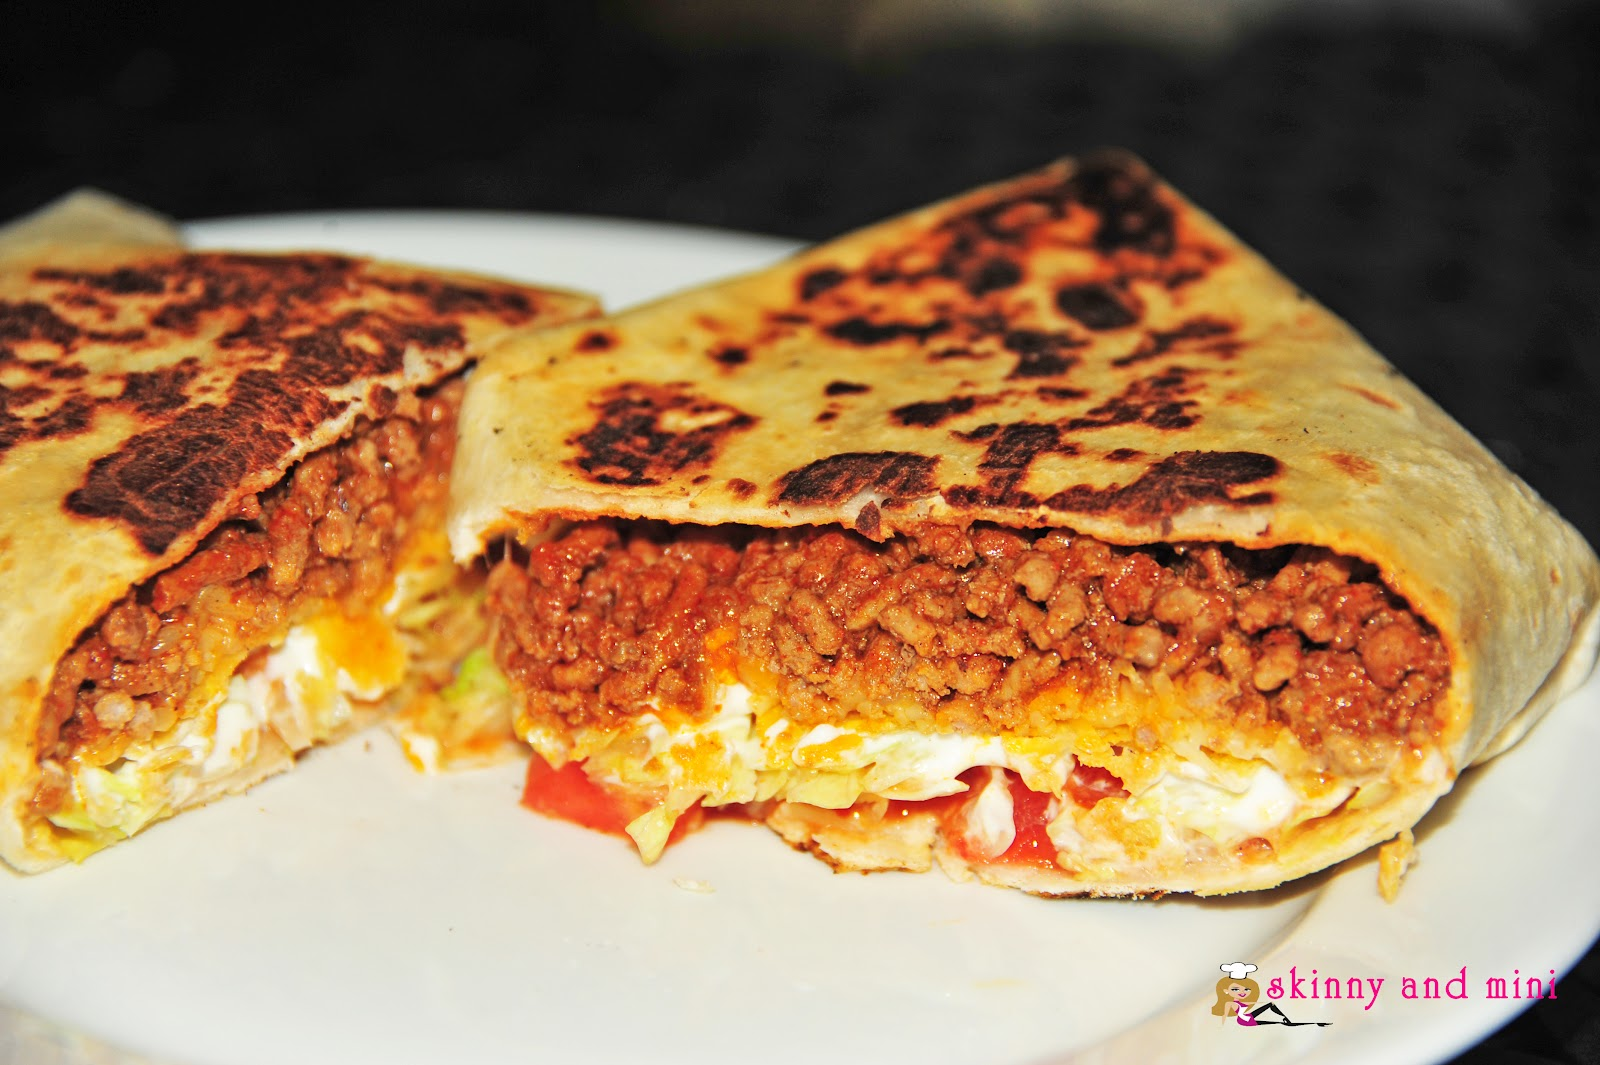 Skinny and mini fun and easy do it yourself food recipies taco taco bell crunchwrap supreme solutioingenieria Images